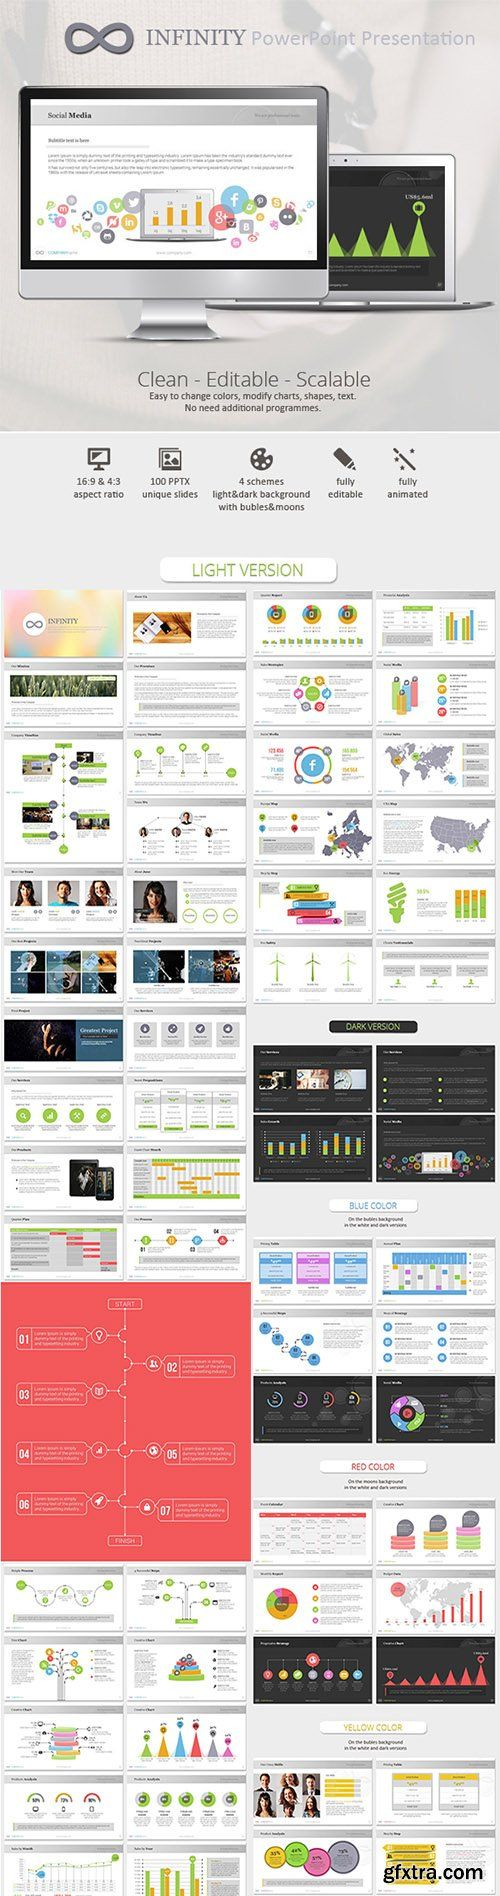 Infinity Colors PowerPoint Presentation Template - GraphicRiver 9101039